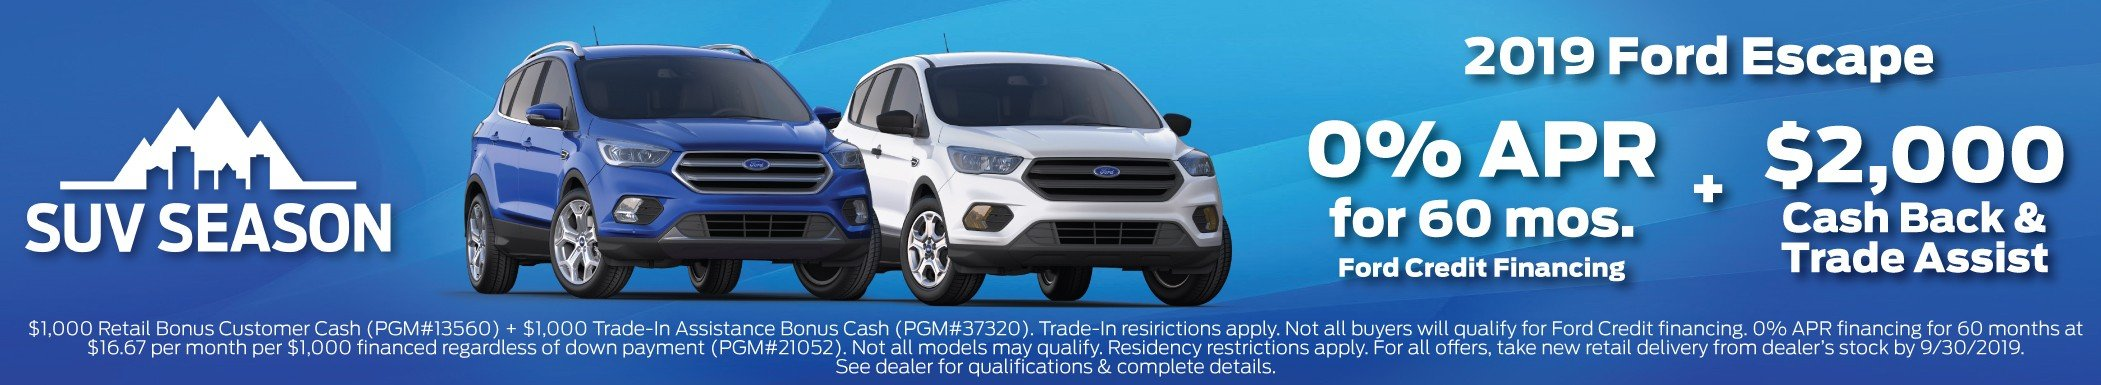 2019 Ford Escape Incentive 9-30-2019